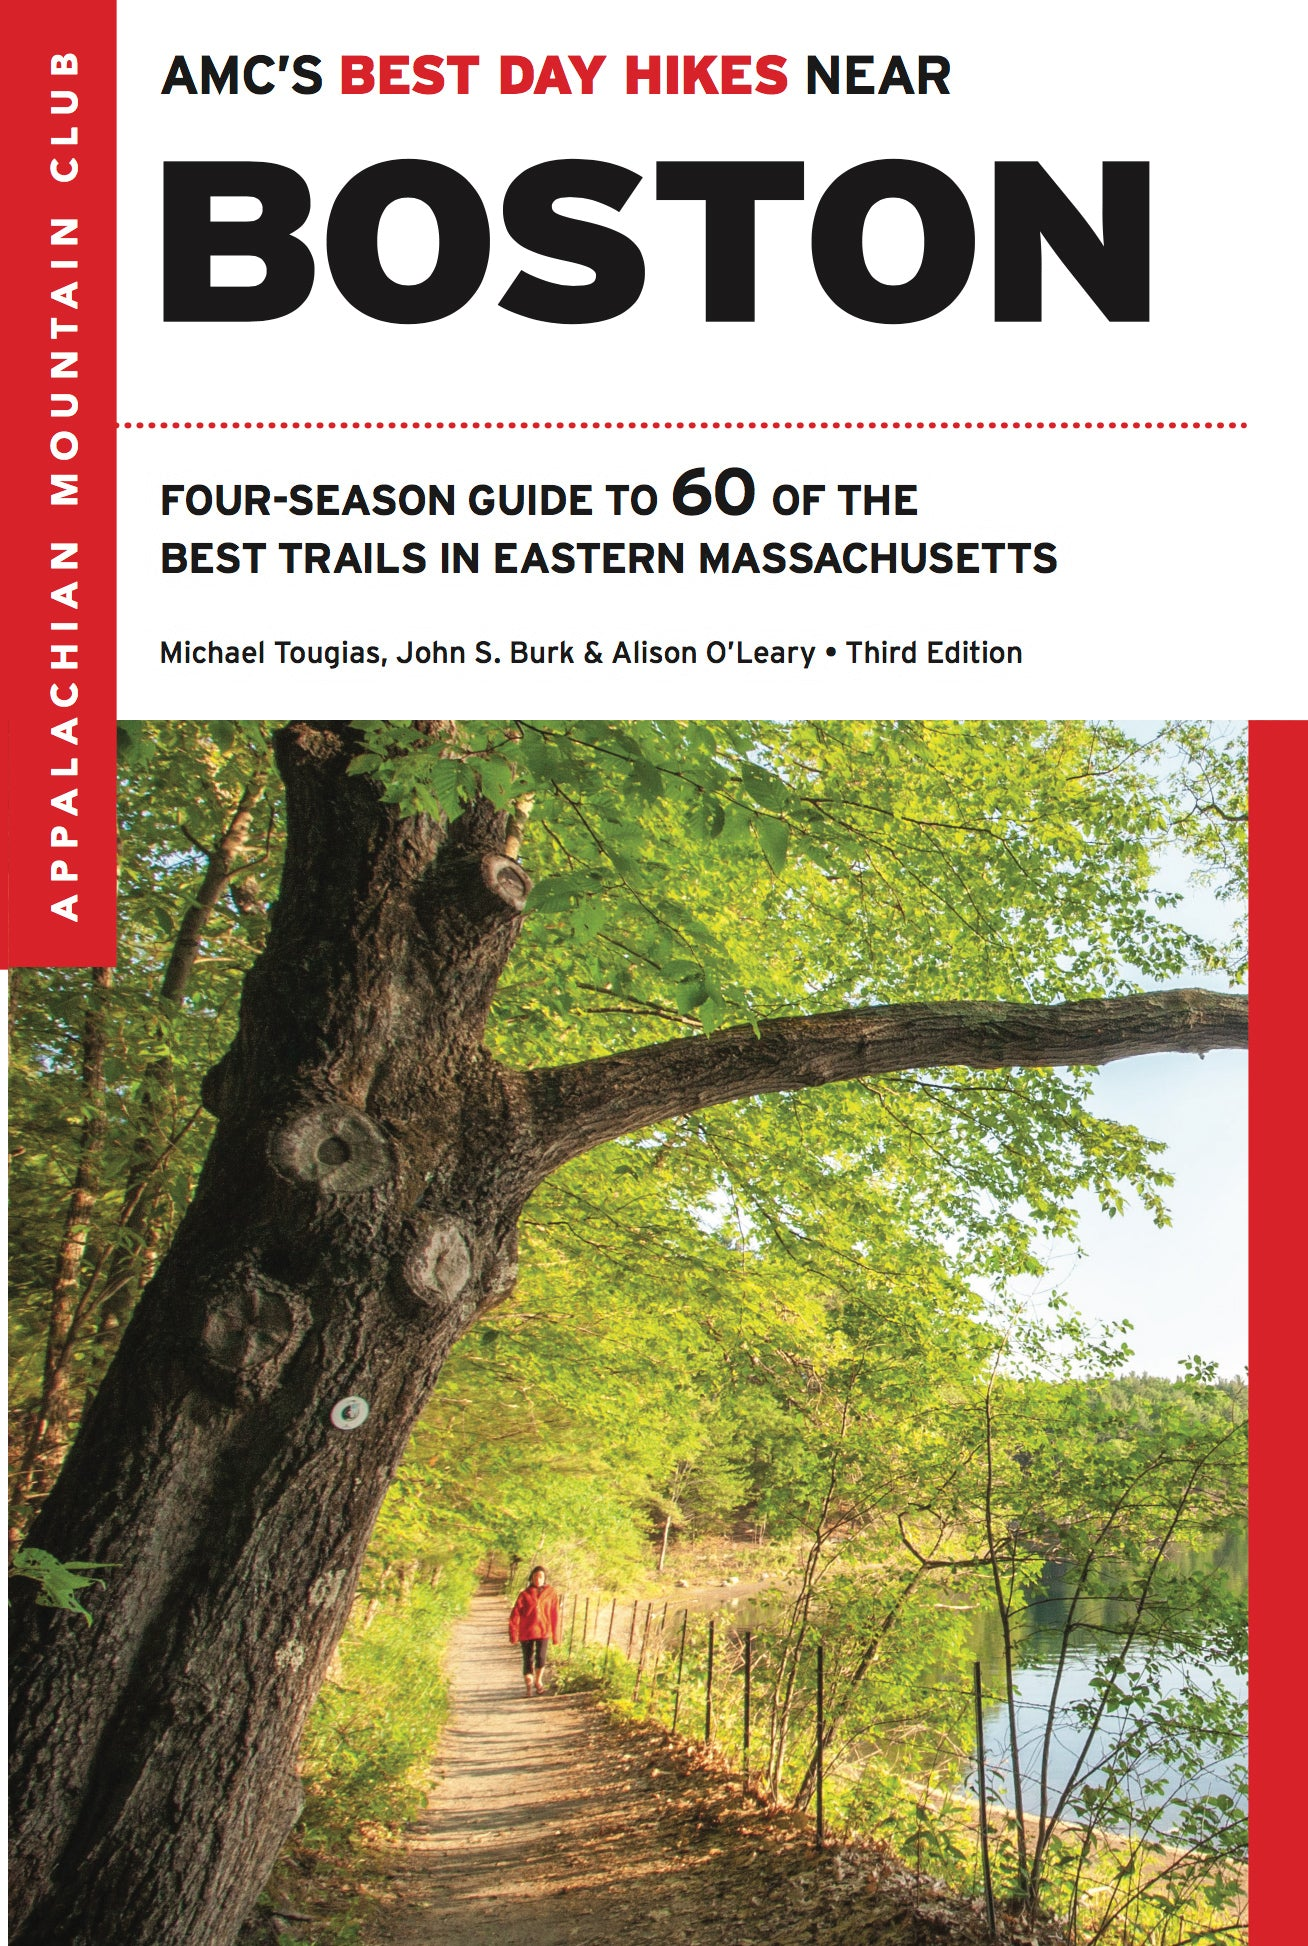 AMC's Best Day Hikes Near Boston, 3rd Edition